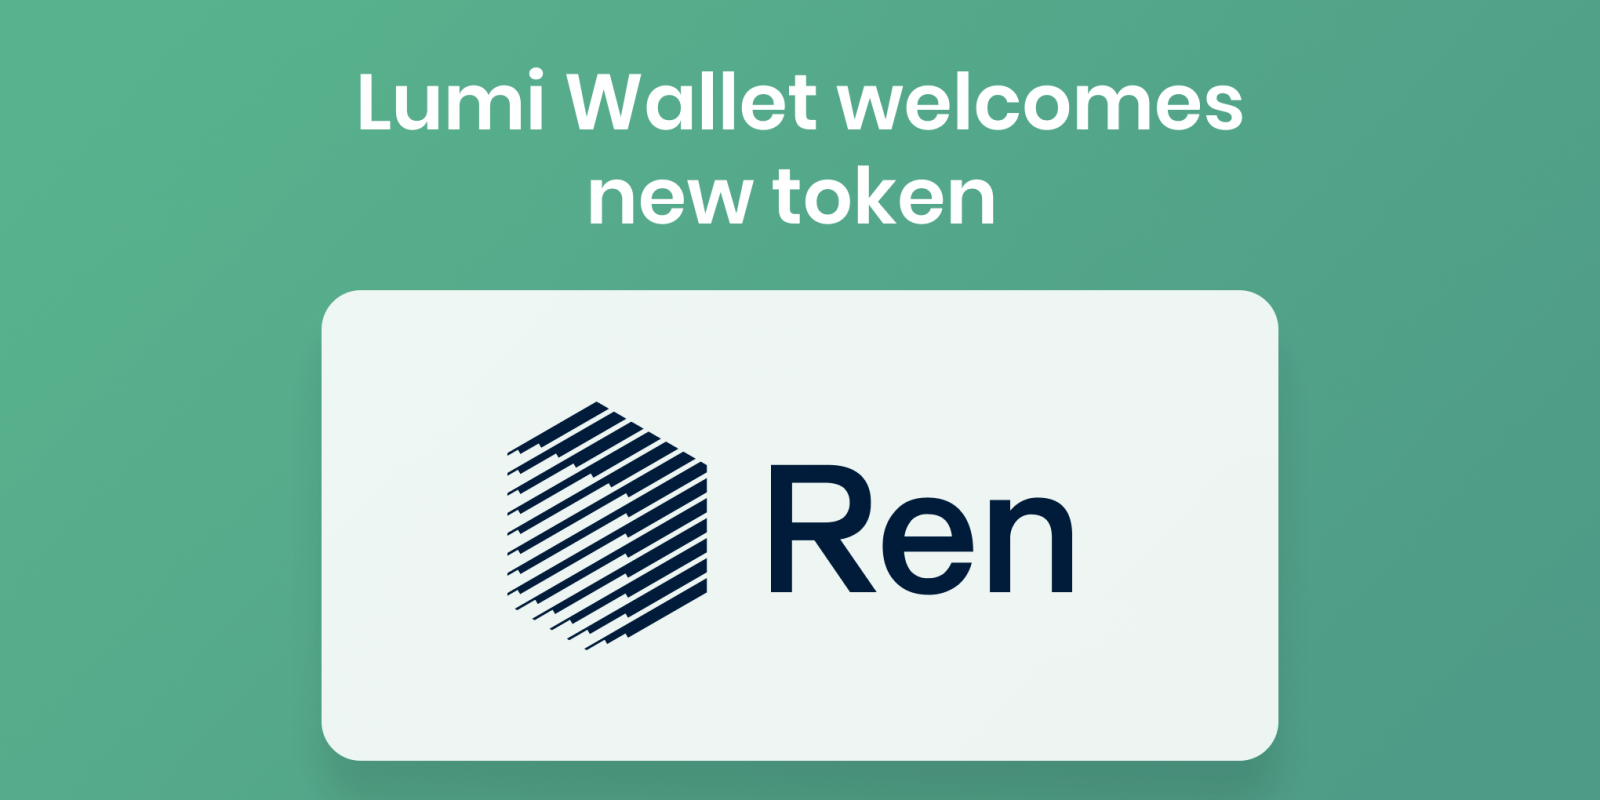 ren crypto and lumi wallet